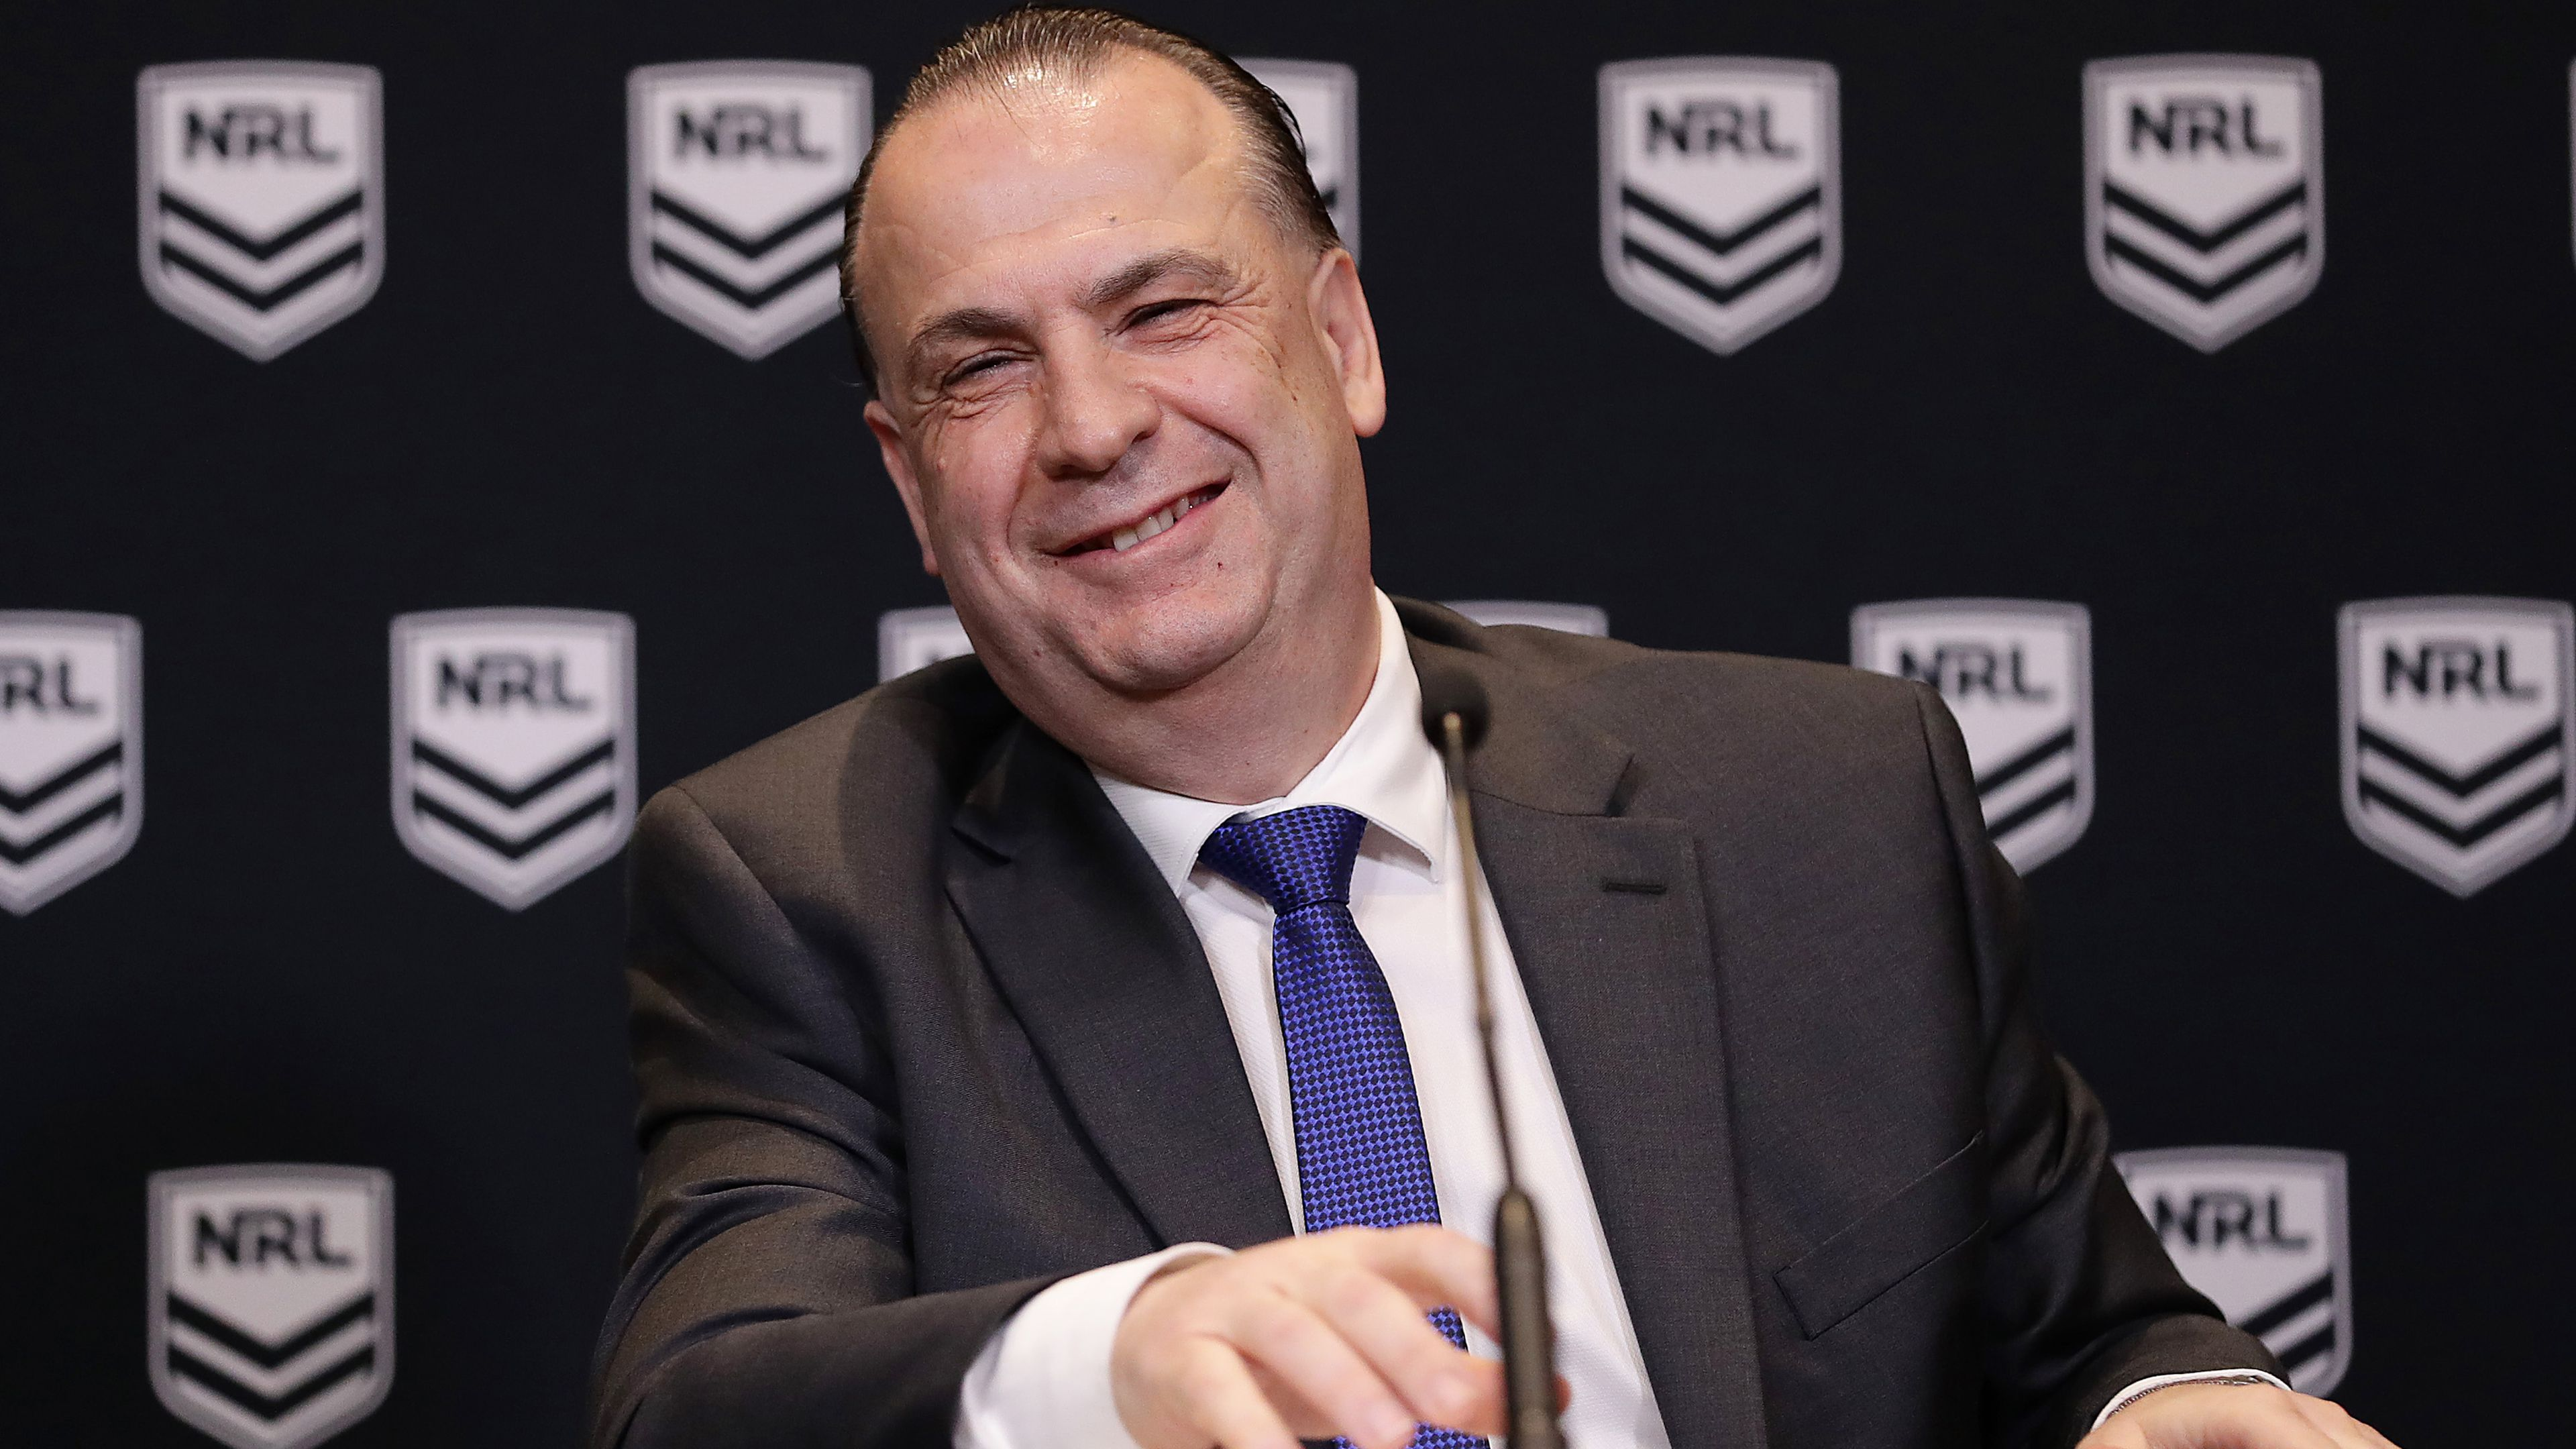 The NRL will ask the government to prioritise their players for COVID-19 vaccinations